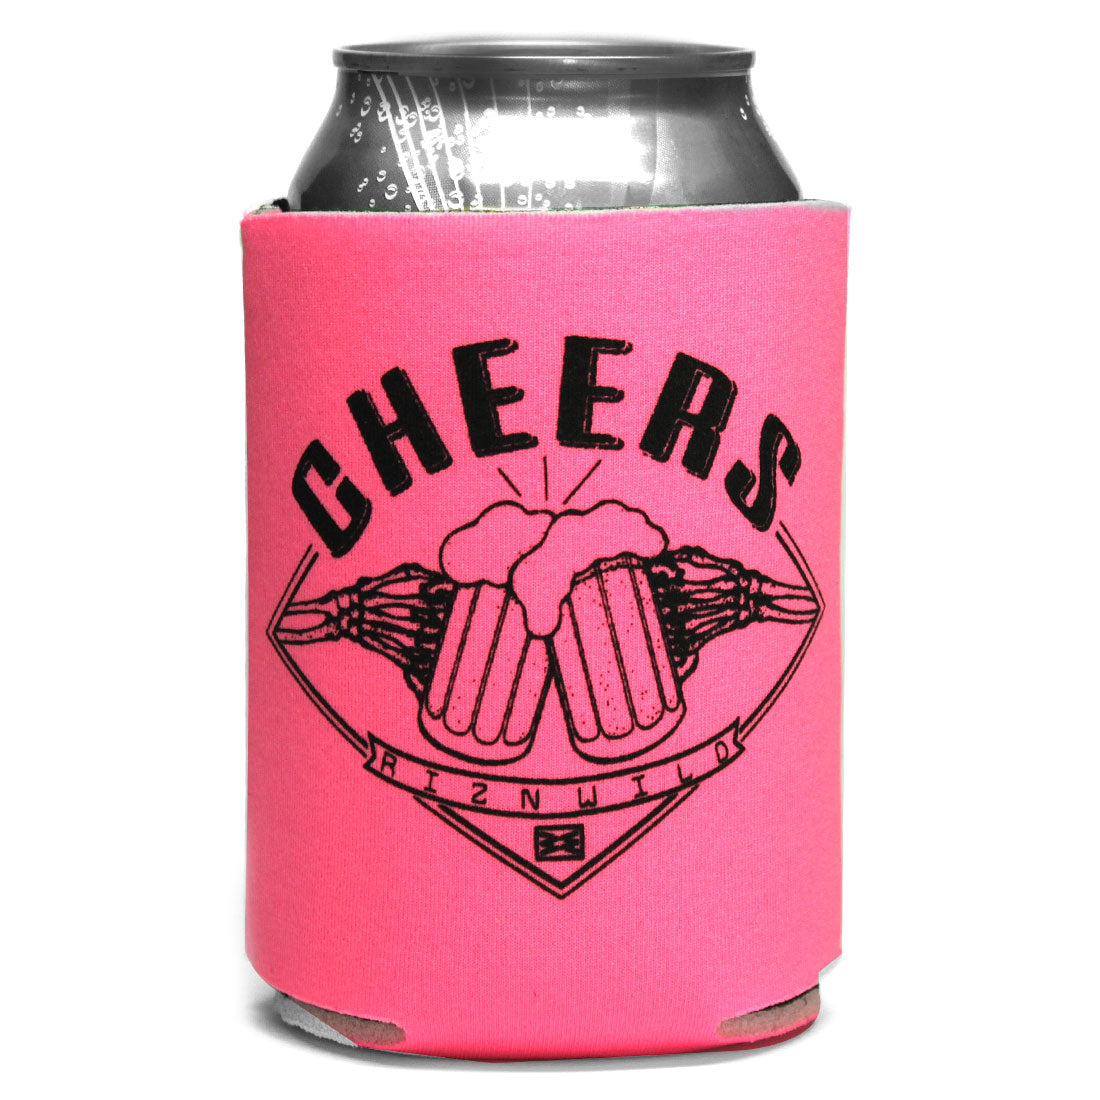 Cheers Koozie in Hot Pink